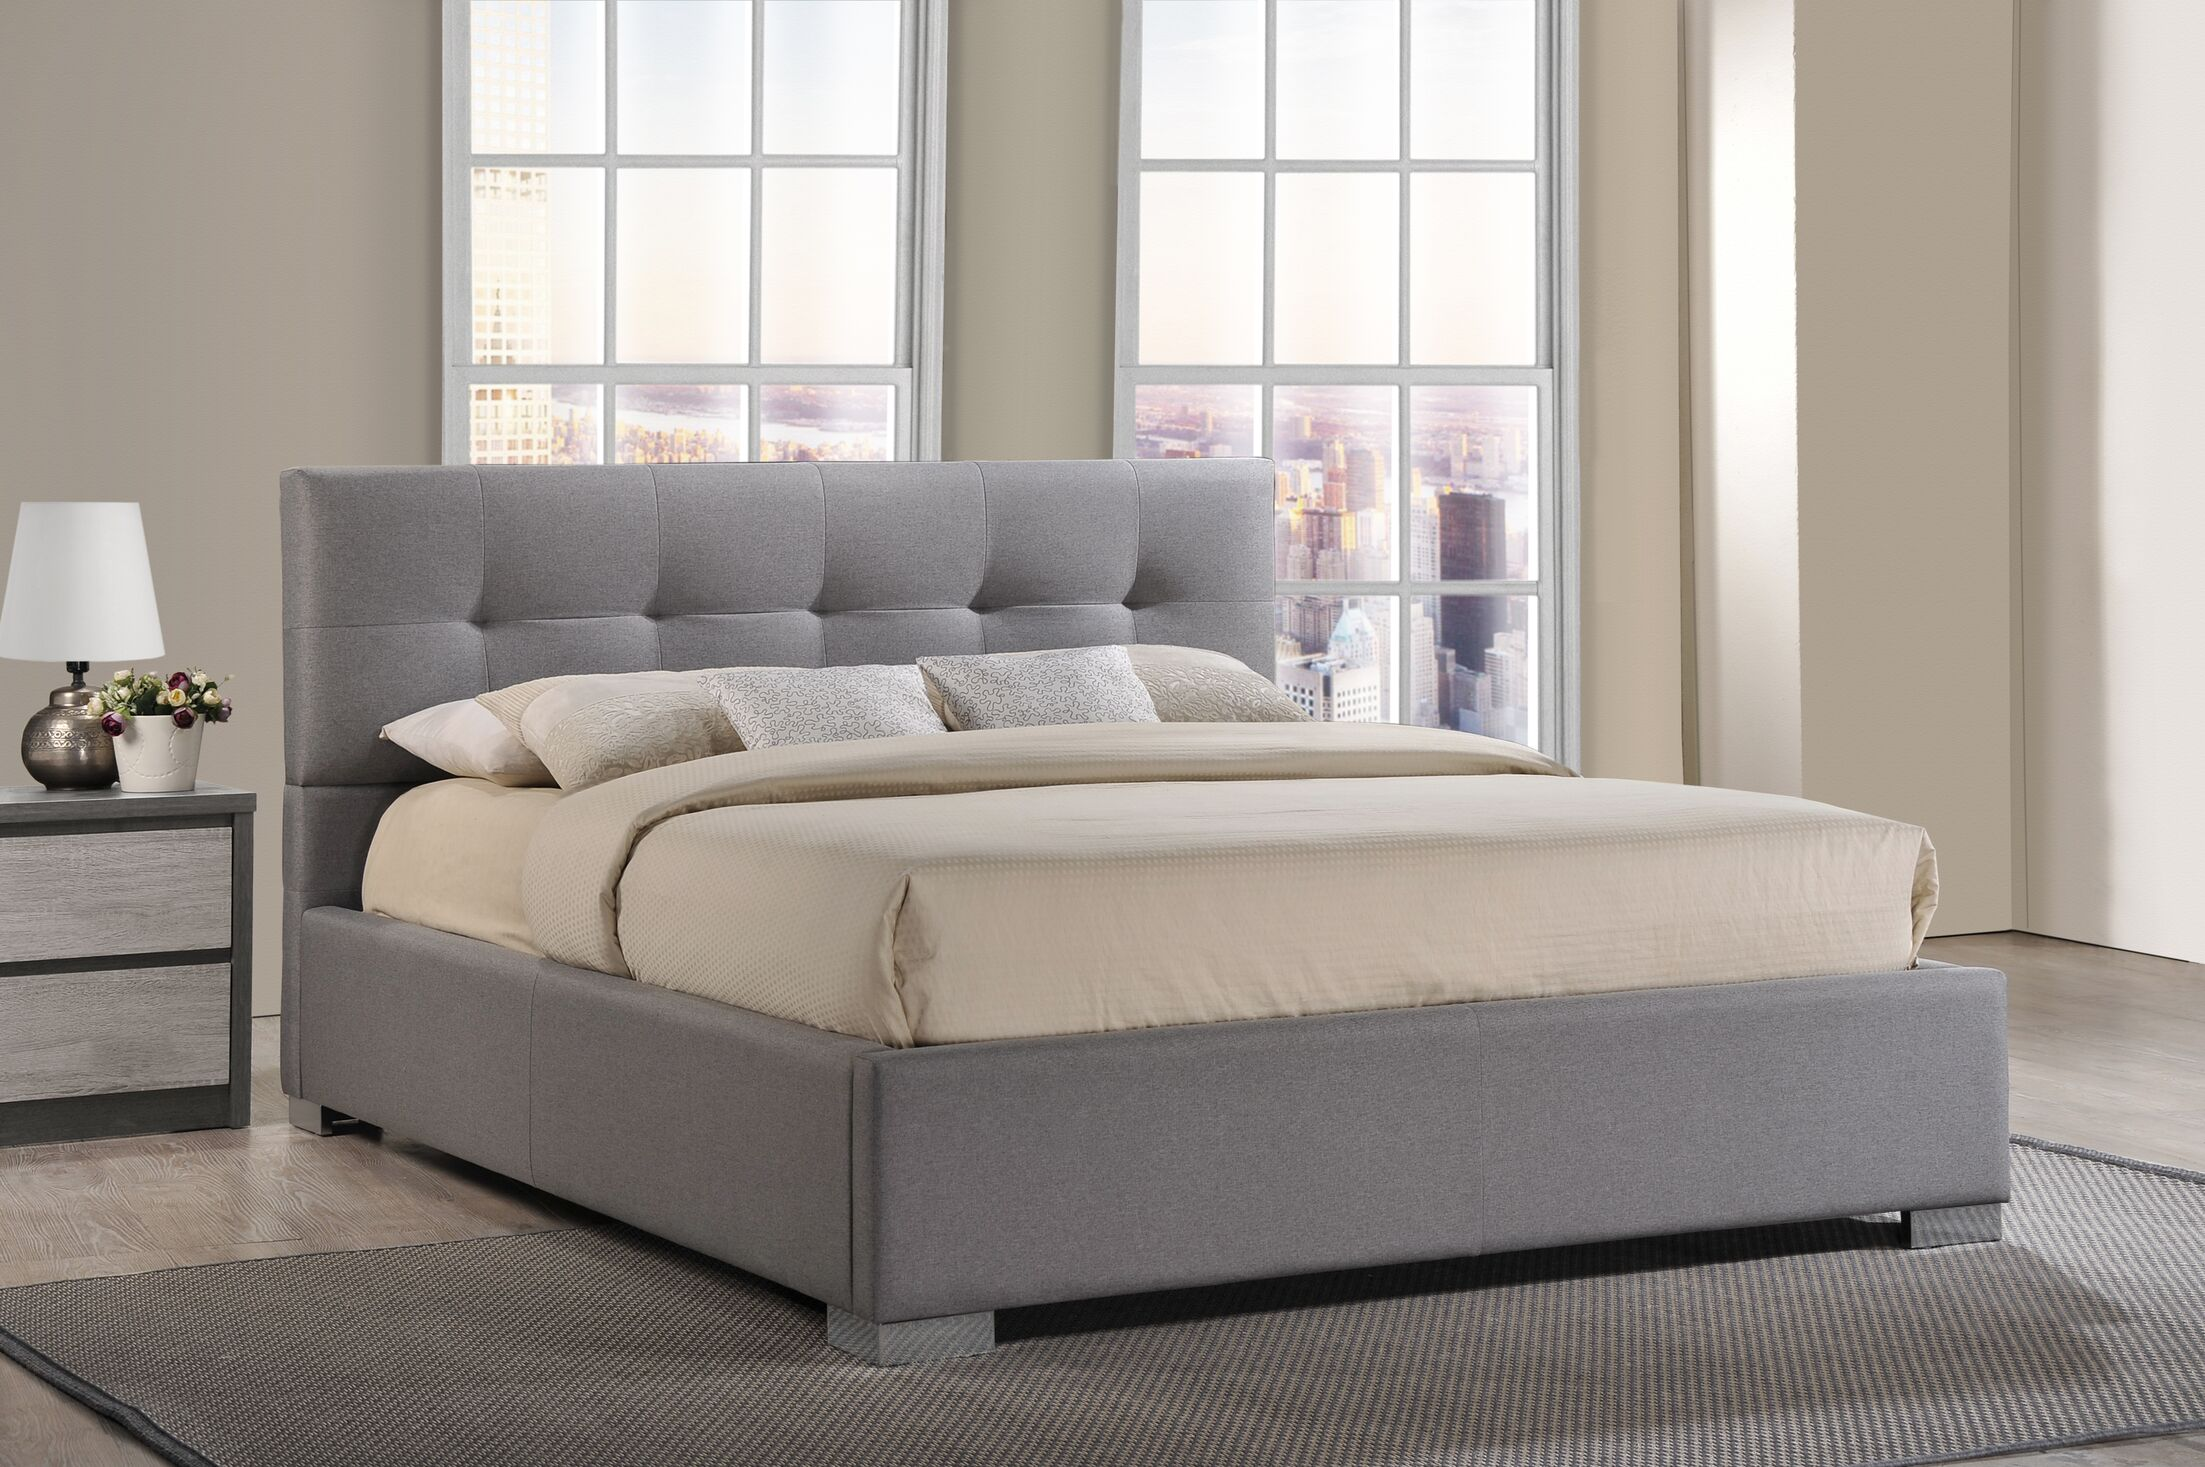 Trudeau Upholstered Platform Bed Color: Beige, Size: Queen